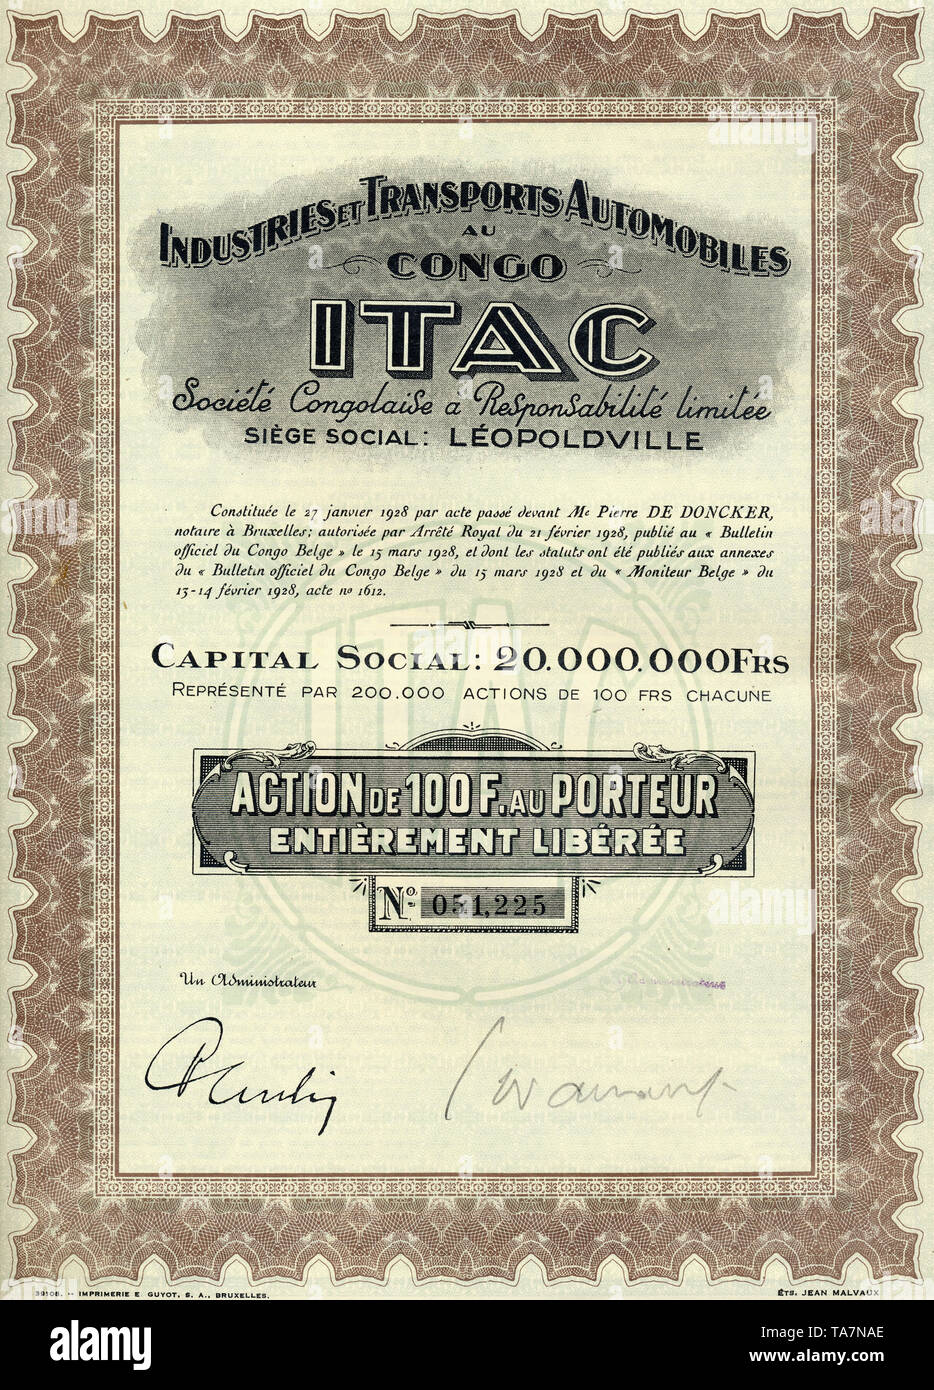 Historic stock certificate, colonial share certificate, 100 Belgian francs, Industries et Transports Automobiles au Congo, ITAC, automotive and transportation industry of Congo, 1928, Leopoldville, Belgian Congo, now Republic of Congo, Africa, Historisches Wertpapier, Kolonial-Aktie über 100 belgische Franc, Automobilindustrie und Transporte im Kongo, Industries et Transports Automobiles au Congo, ITAC, 1928, Leopoldville, Belgisch-Kongo, heute Republik Kongo, Afrika - Stock Image